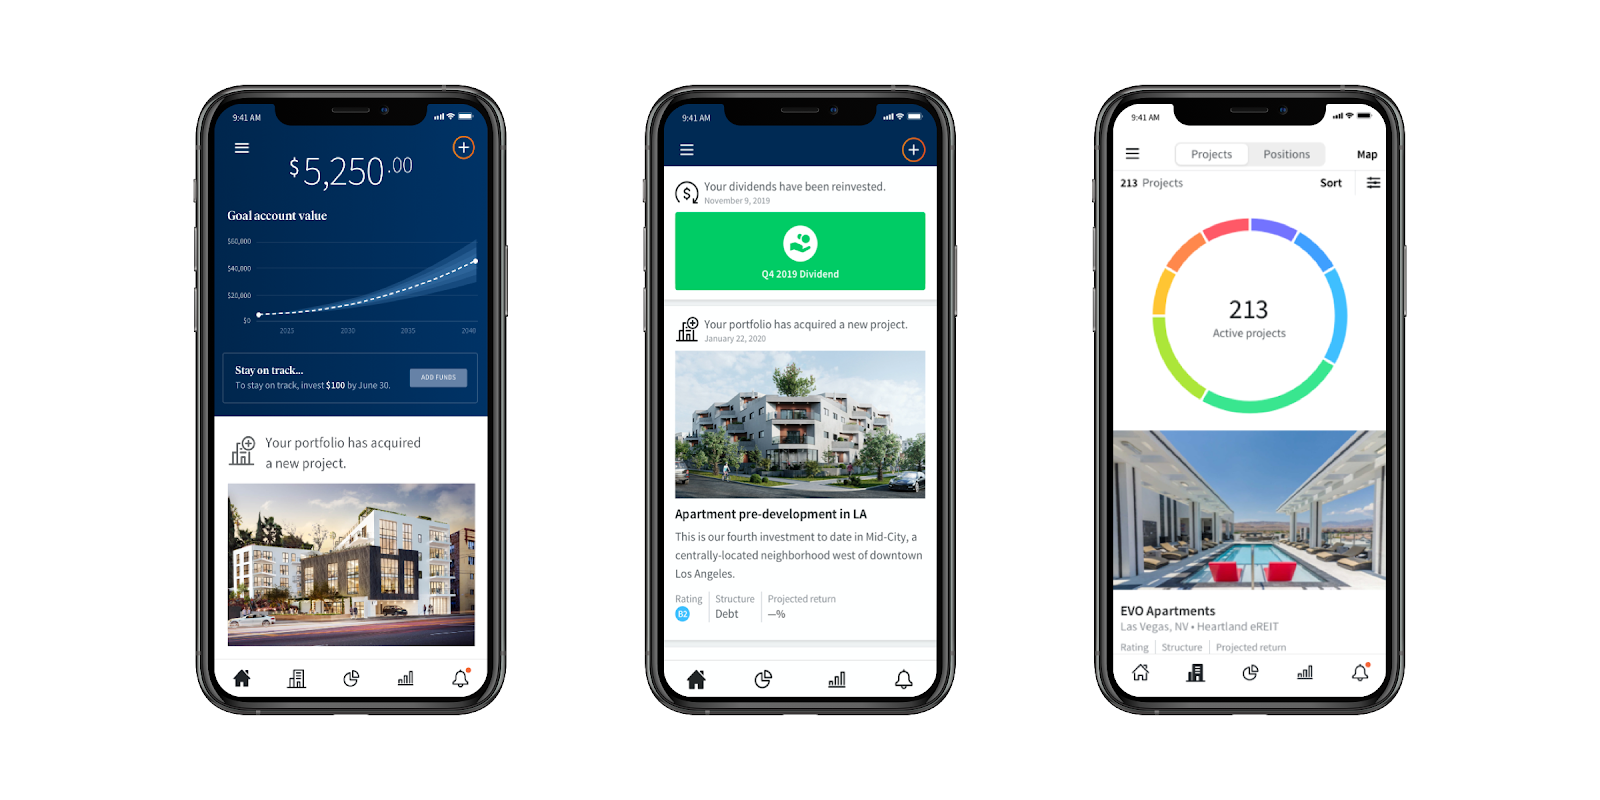 Investing in real estate using an app